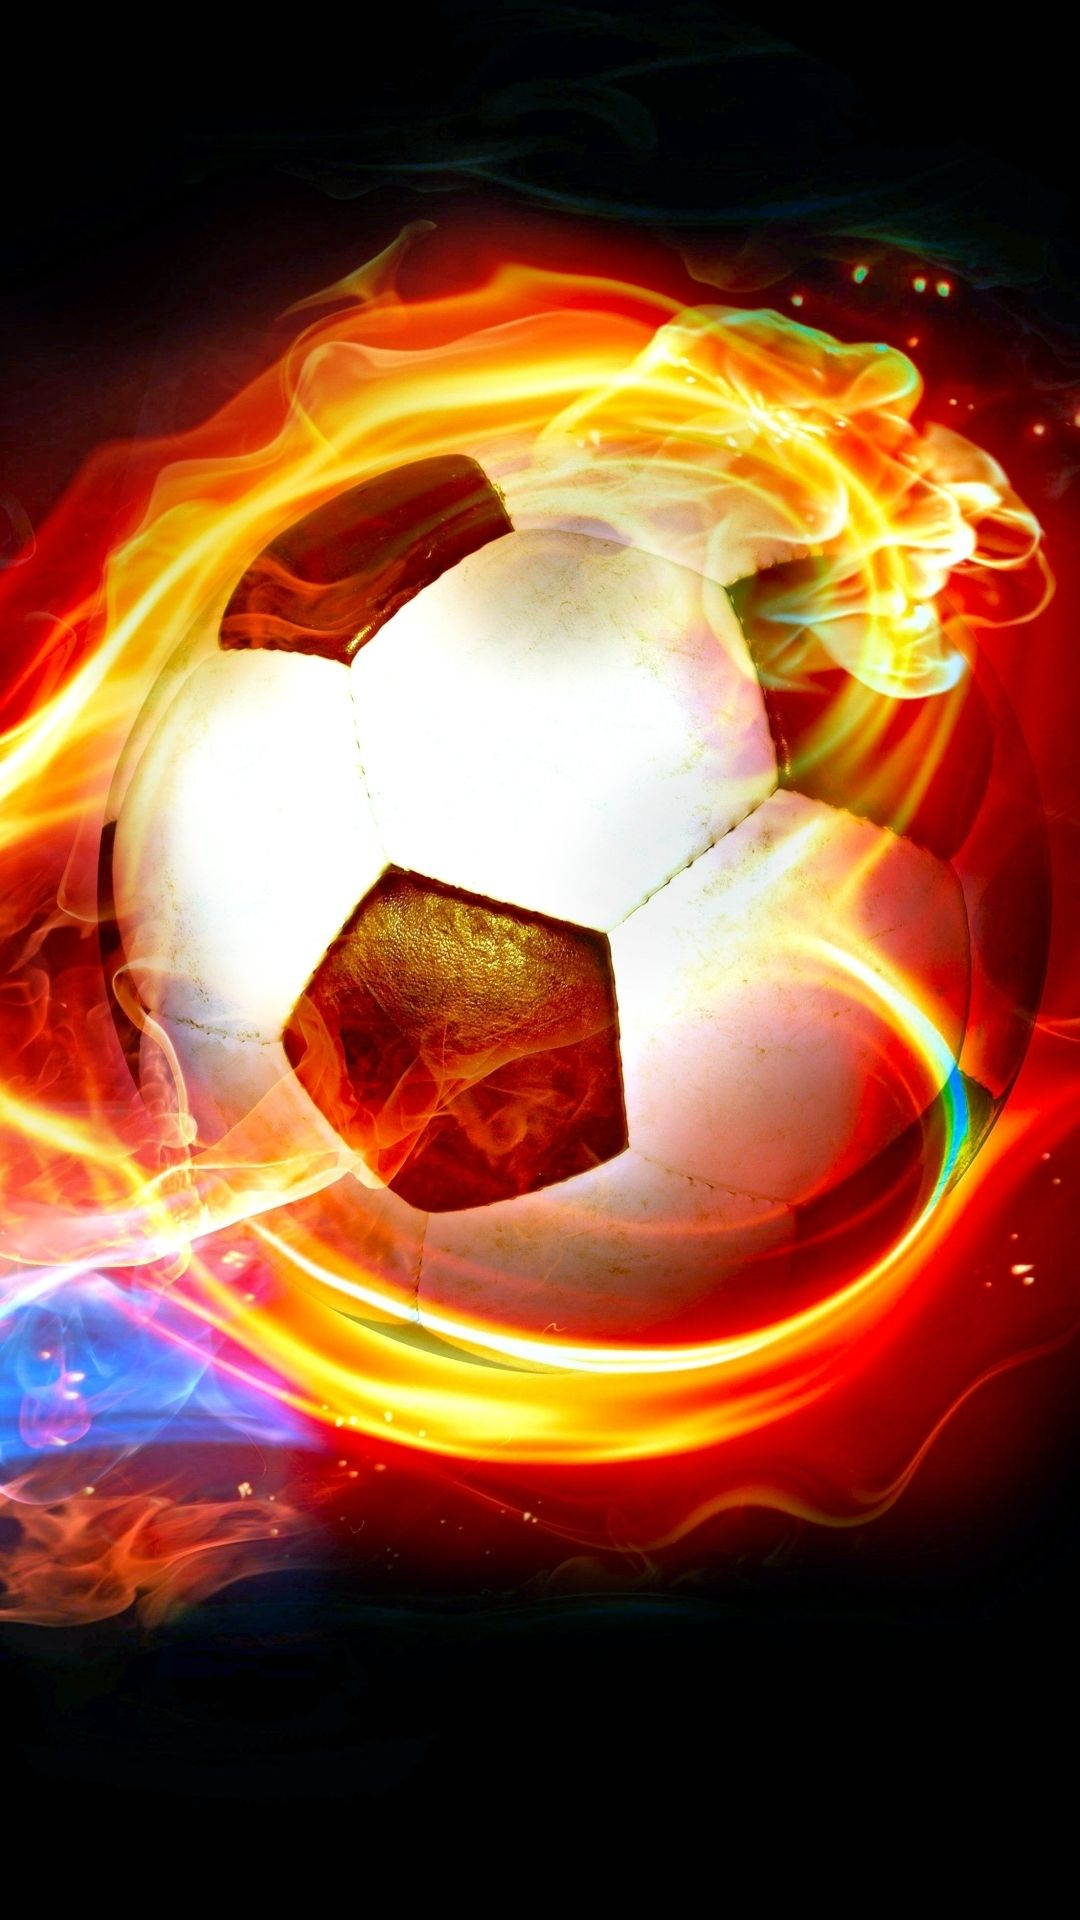 Cool Soccer Wallpapers For Iphone : soccer, wallpapers, iphone, Soccer, Wallpapers, Iphone